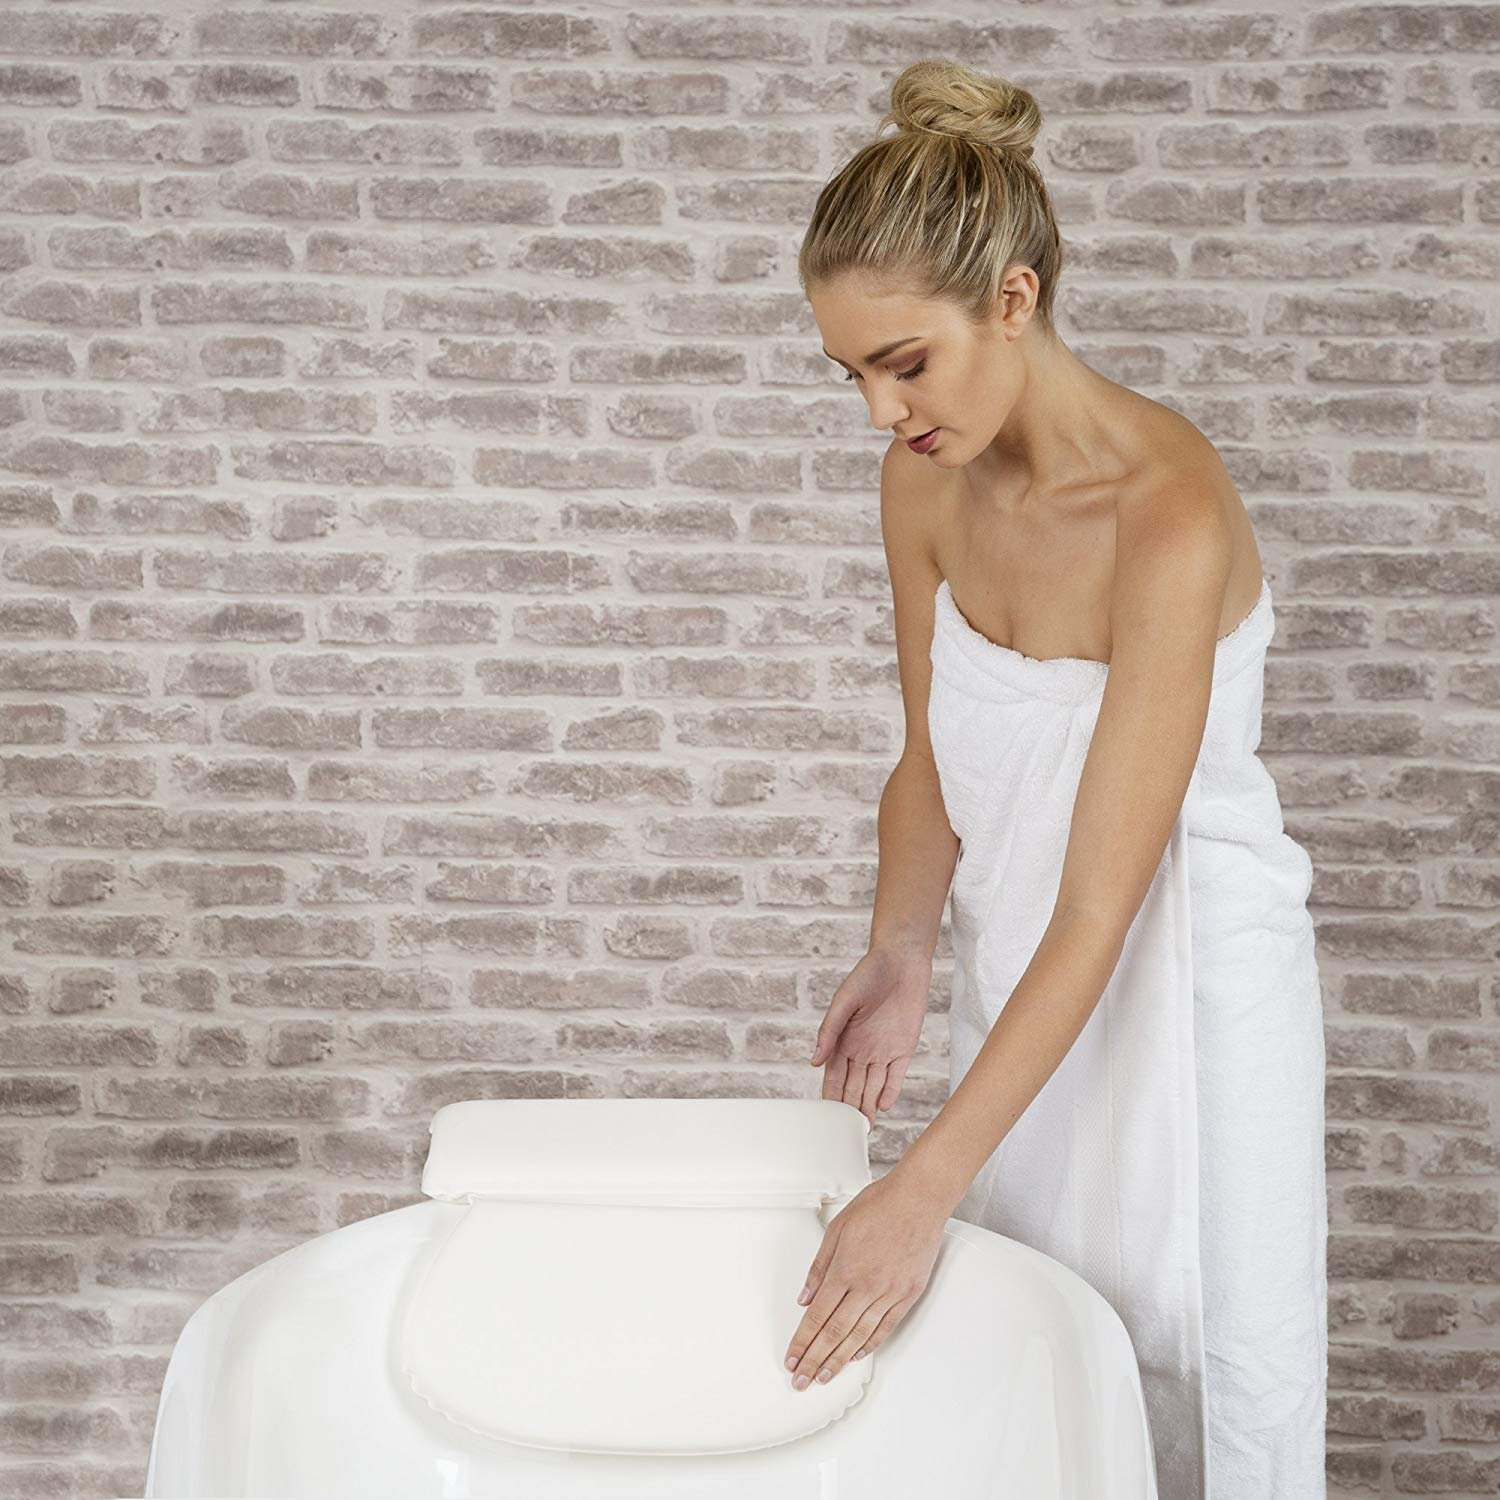 Luxury Spa Bath Pillow with Head Neck Shoulder and Back Support by Bossjoy (Image #6)